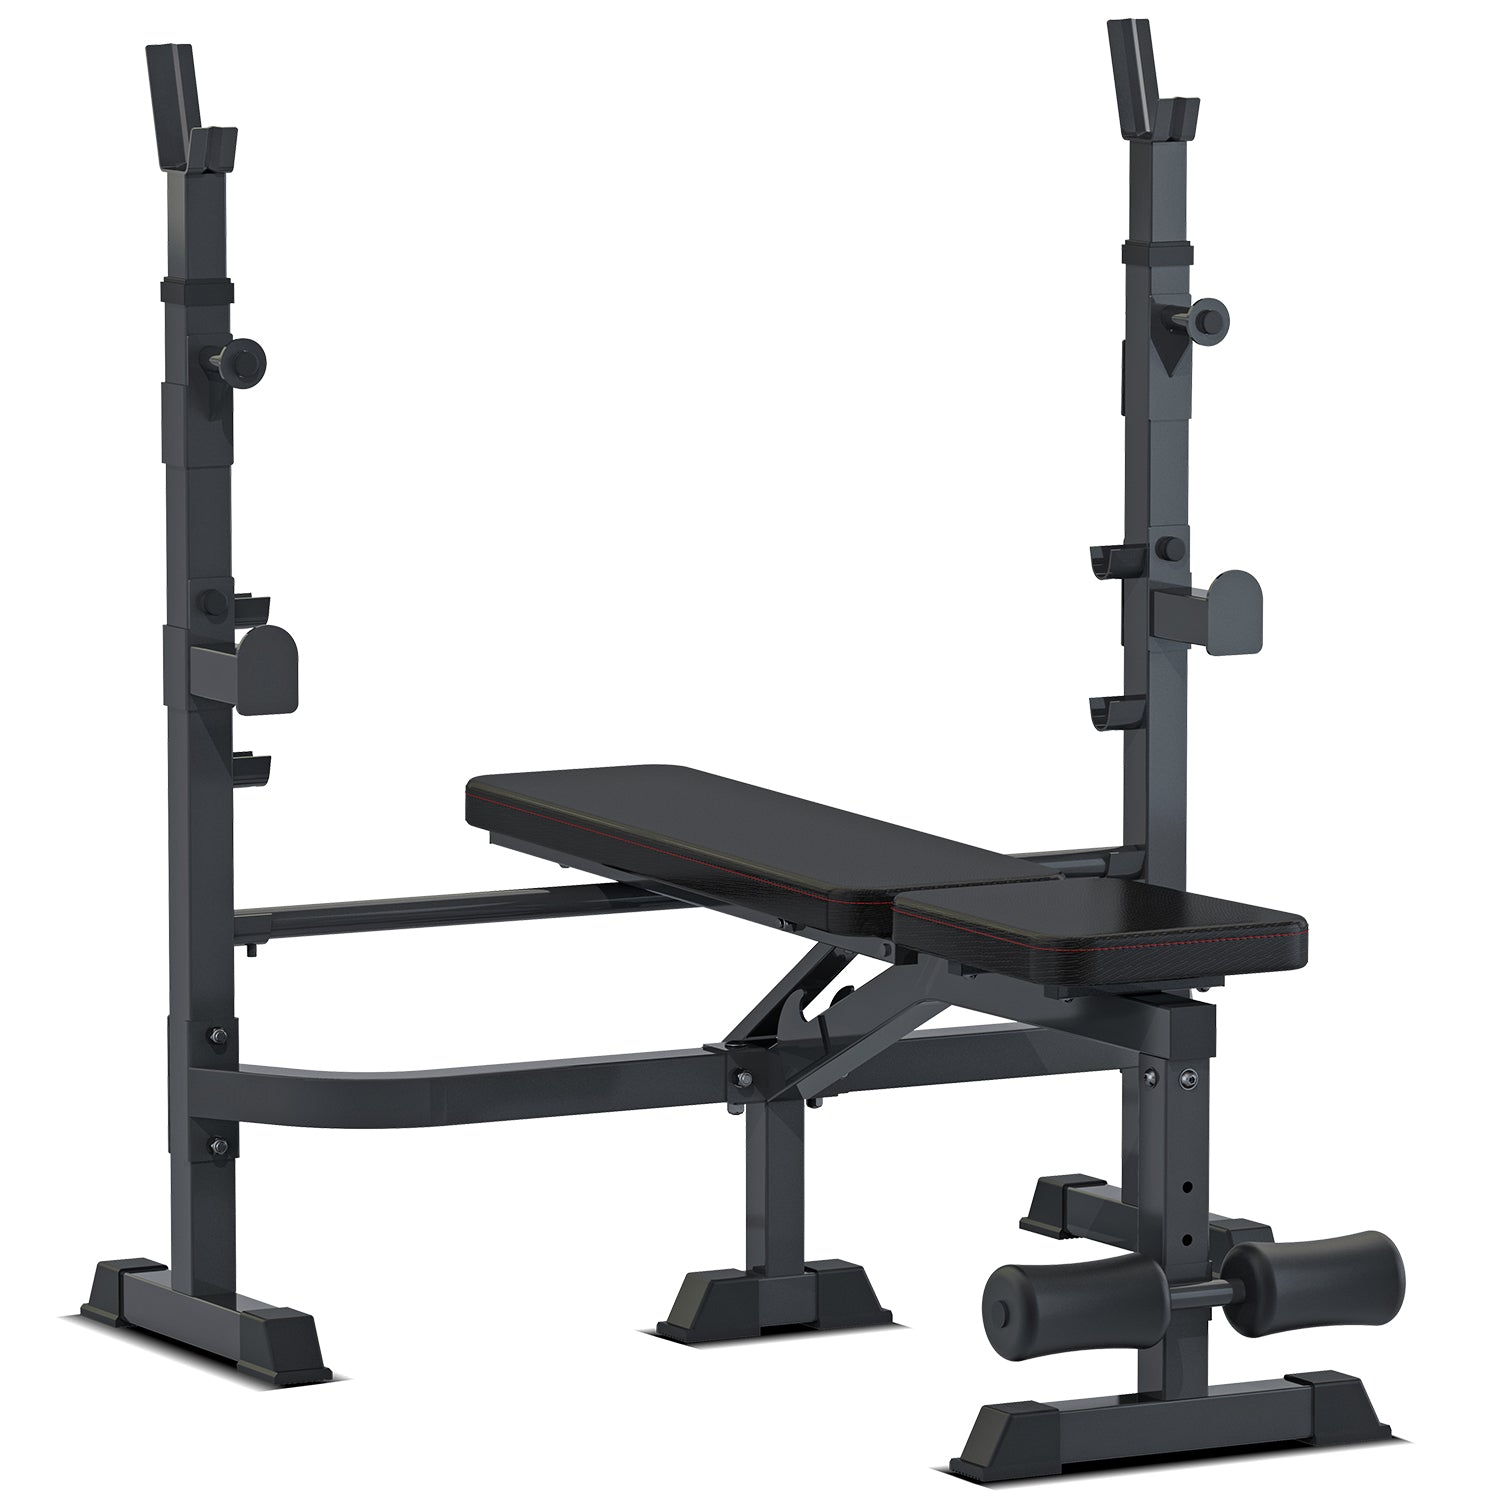 MF-4000 Bench Pre - Order now ships in 11 weeks